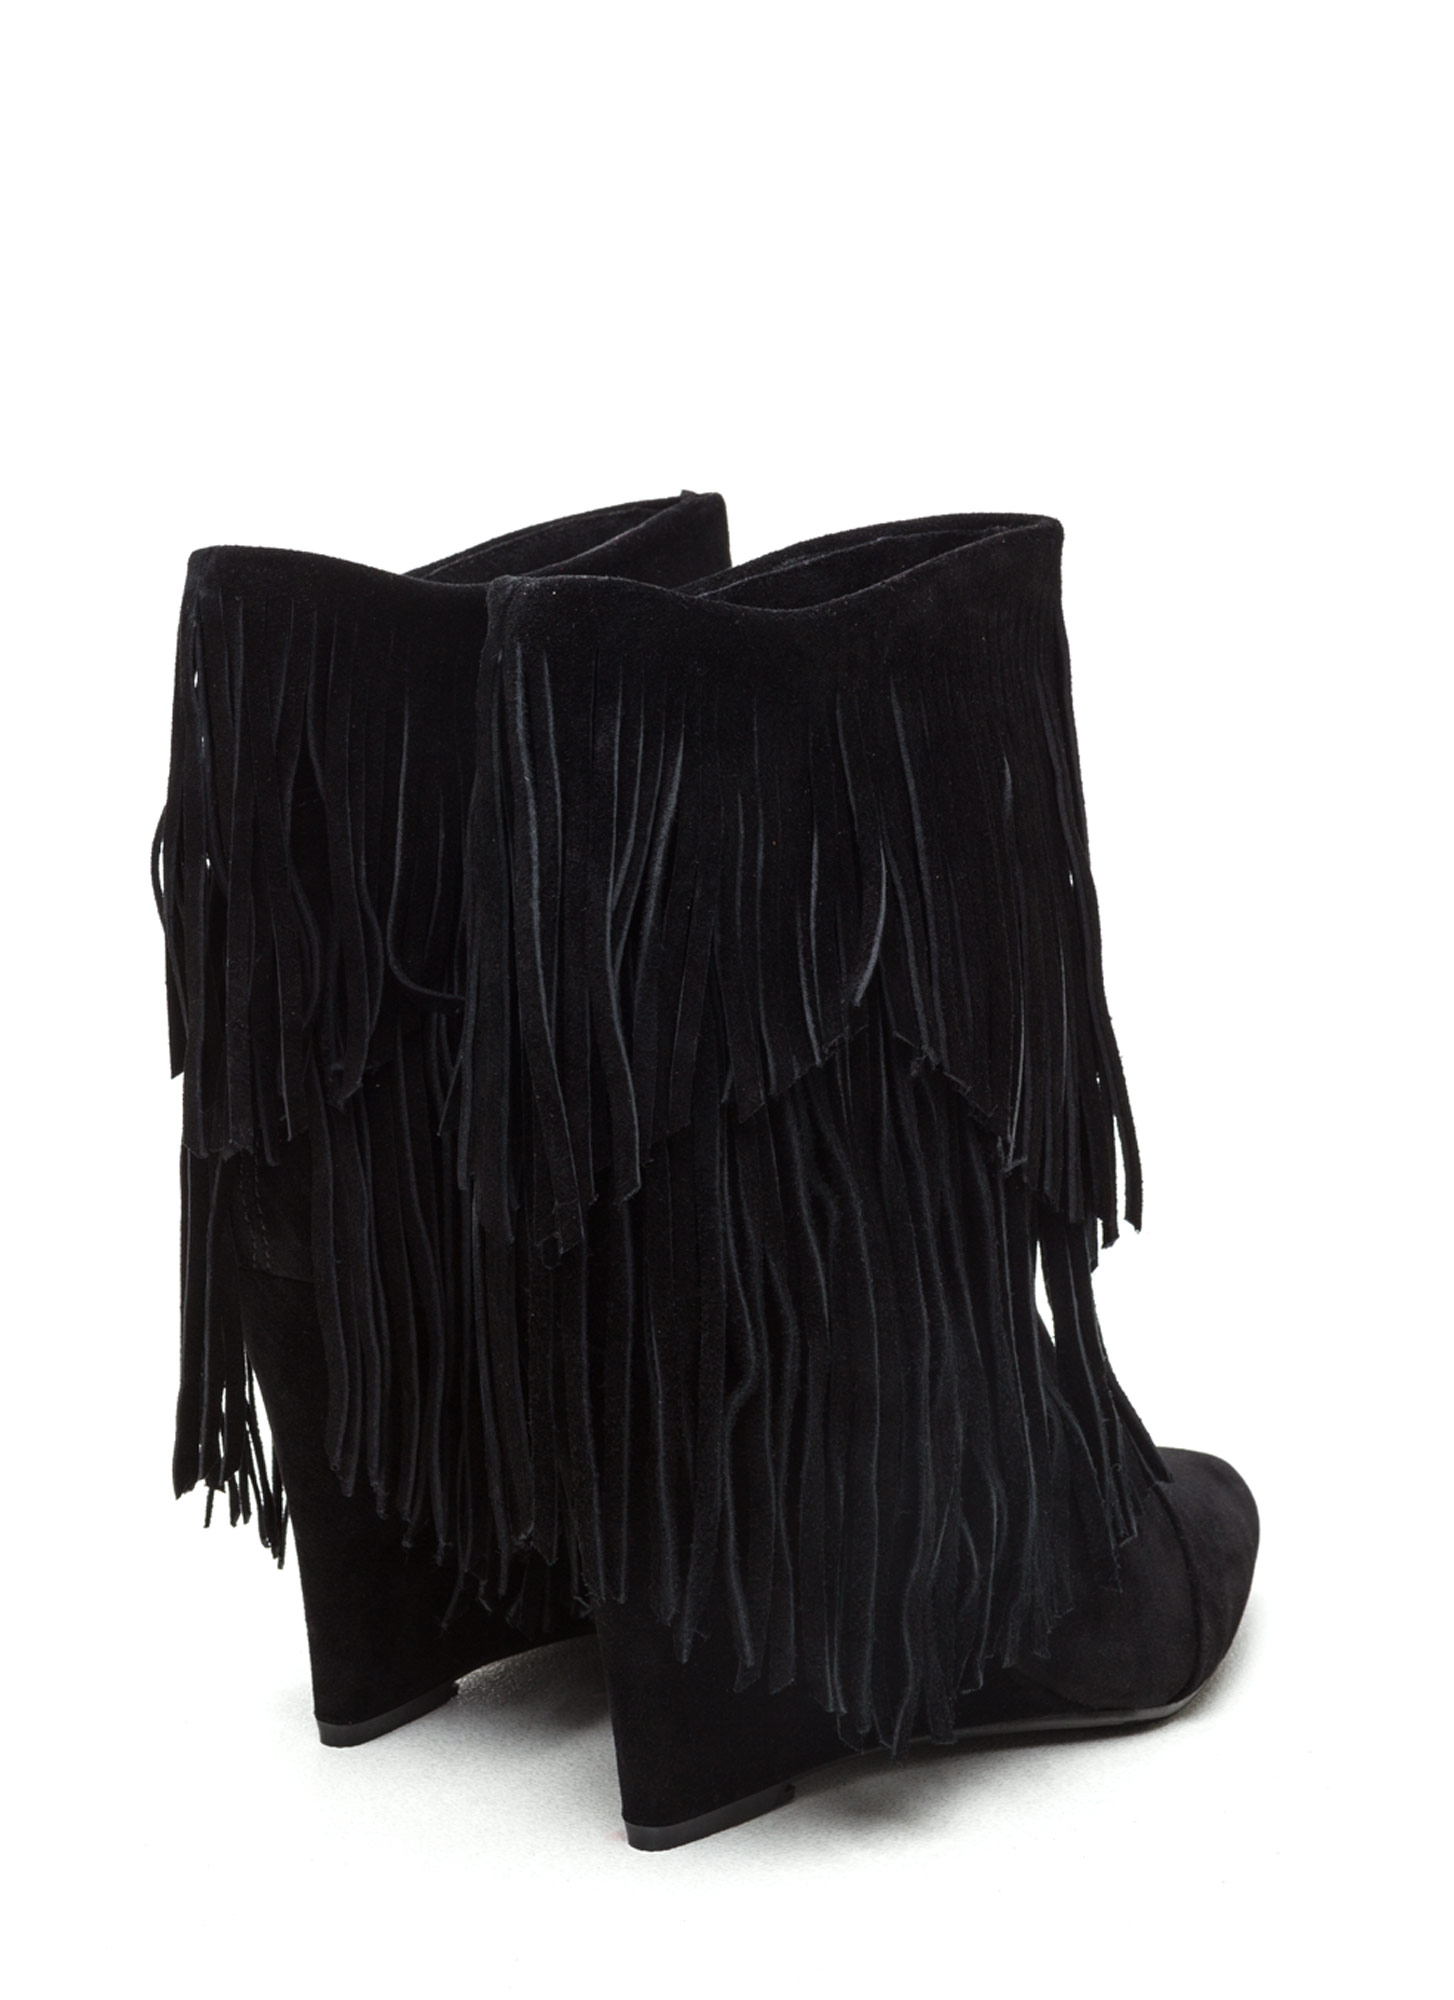 Fringe On Fringe Faux Suede Boots TAN BLACK COBALTBLUE DKPURPLE ...